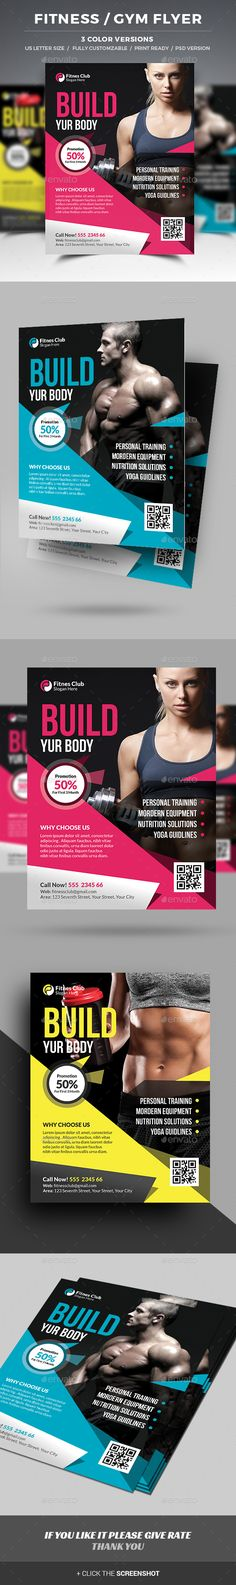 Fitness Flyer Template Branding Design Pinterest Flyer